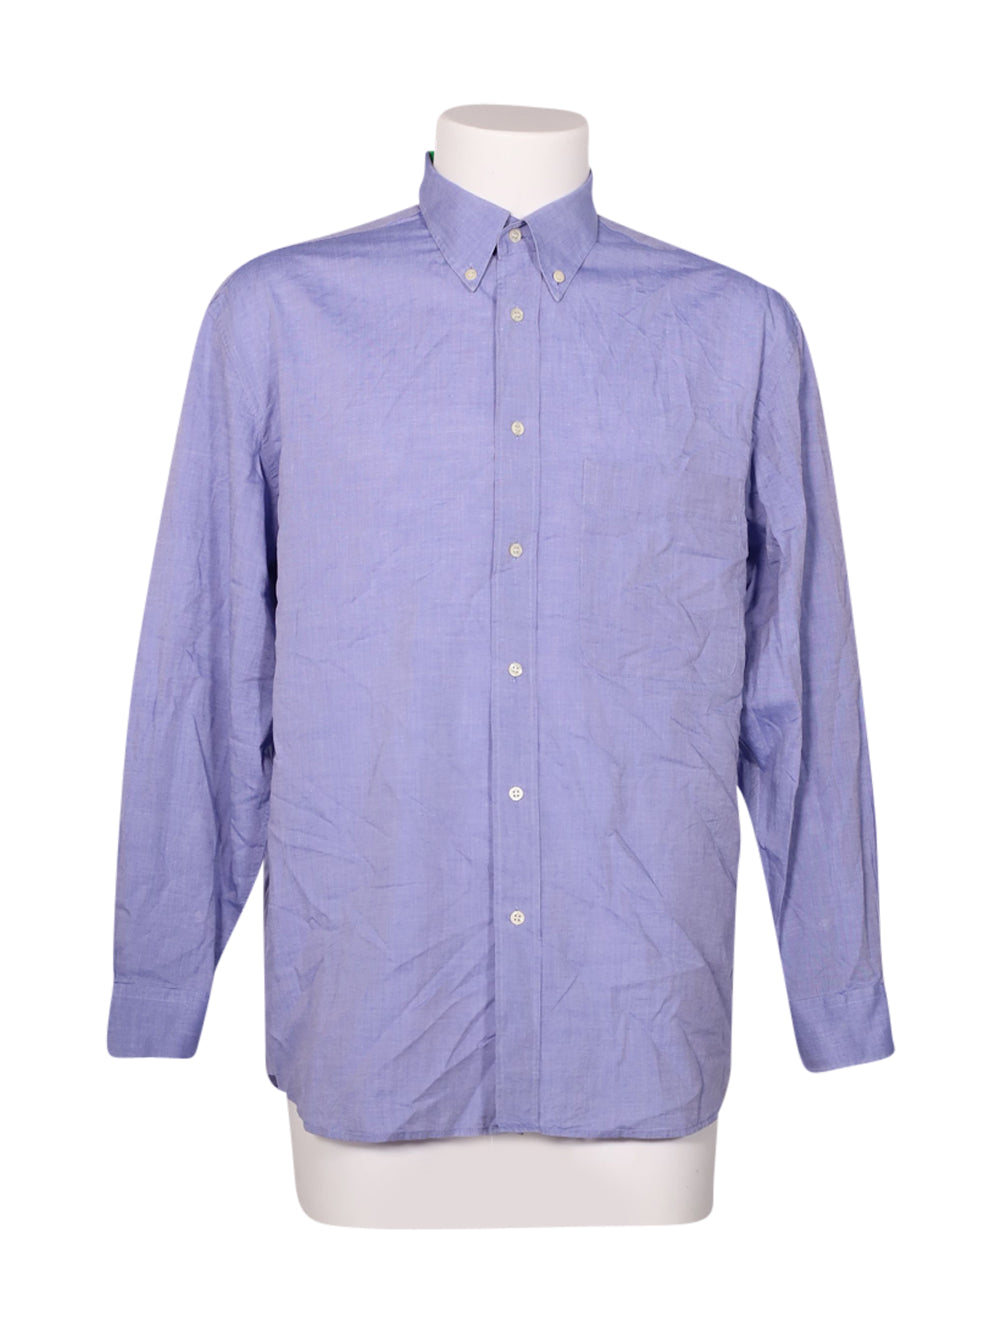 Front photo of Preloved Cacharel Blue Man's shirt - size 38/M